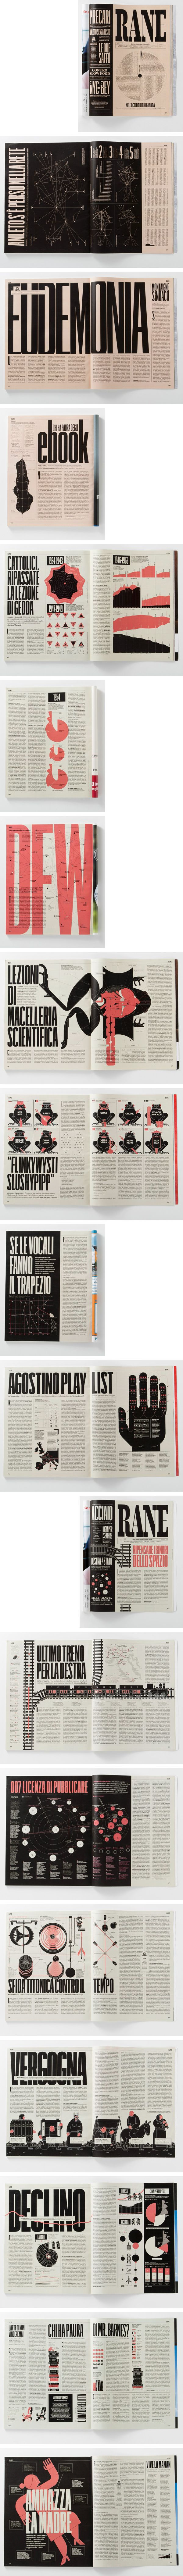 Magazine Inspiration -colours and type (RANE)